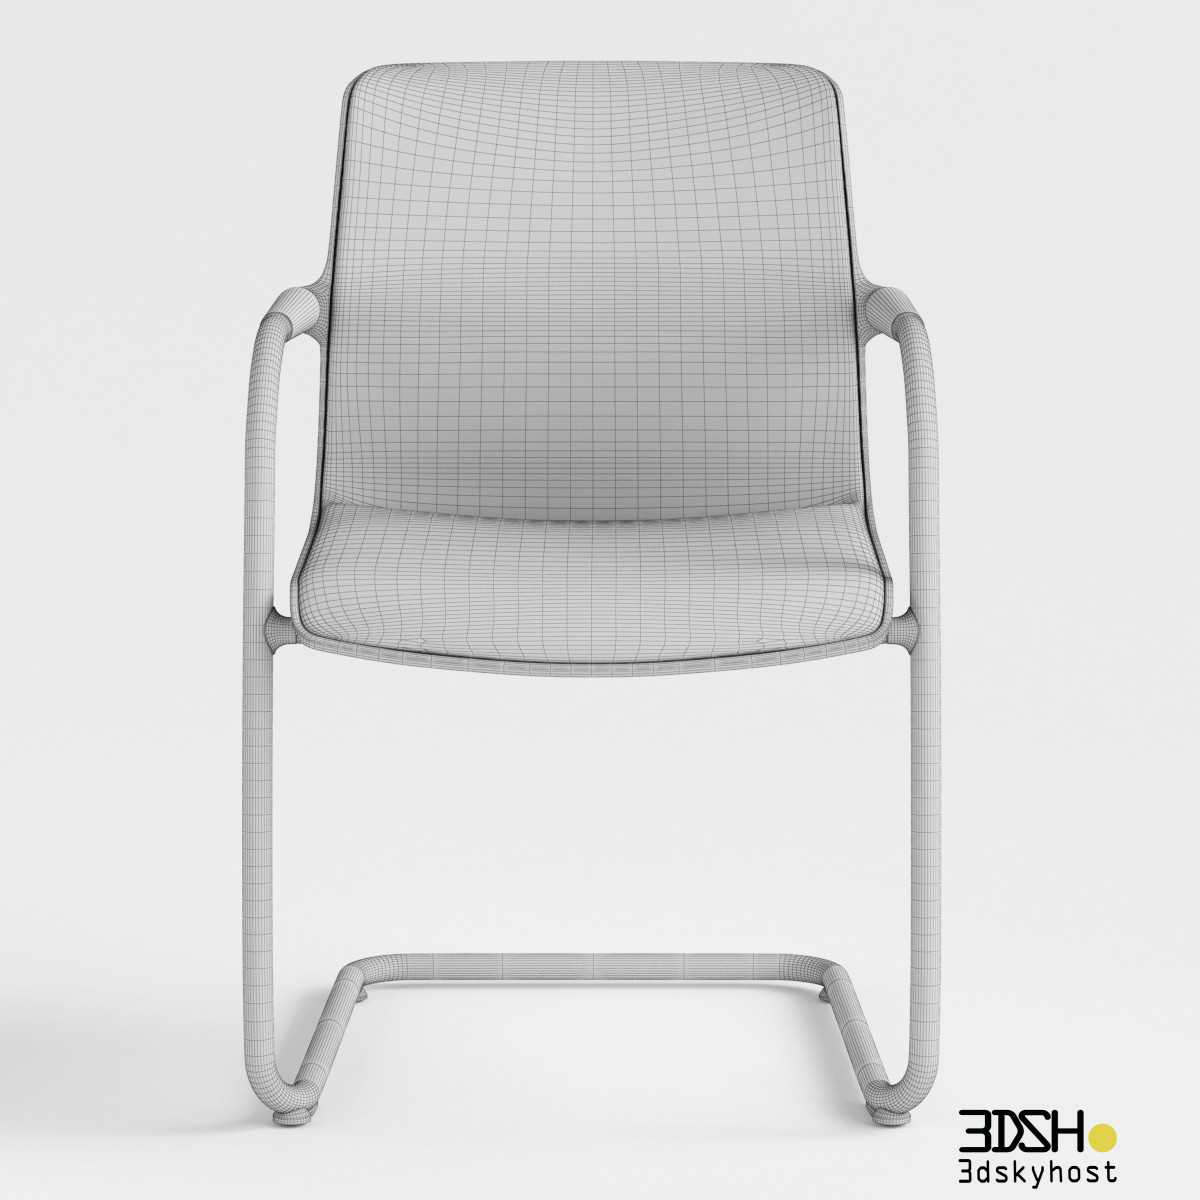 3D Model Unix Chair Cantilever Vitra free download